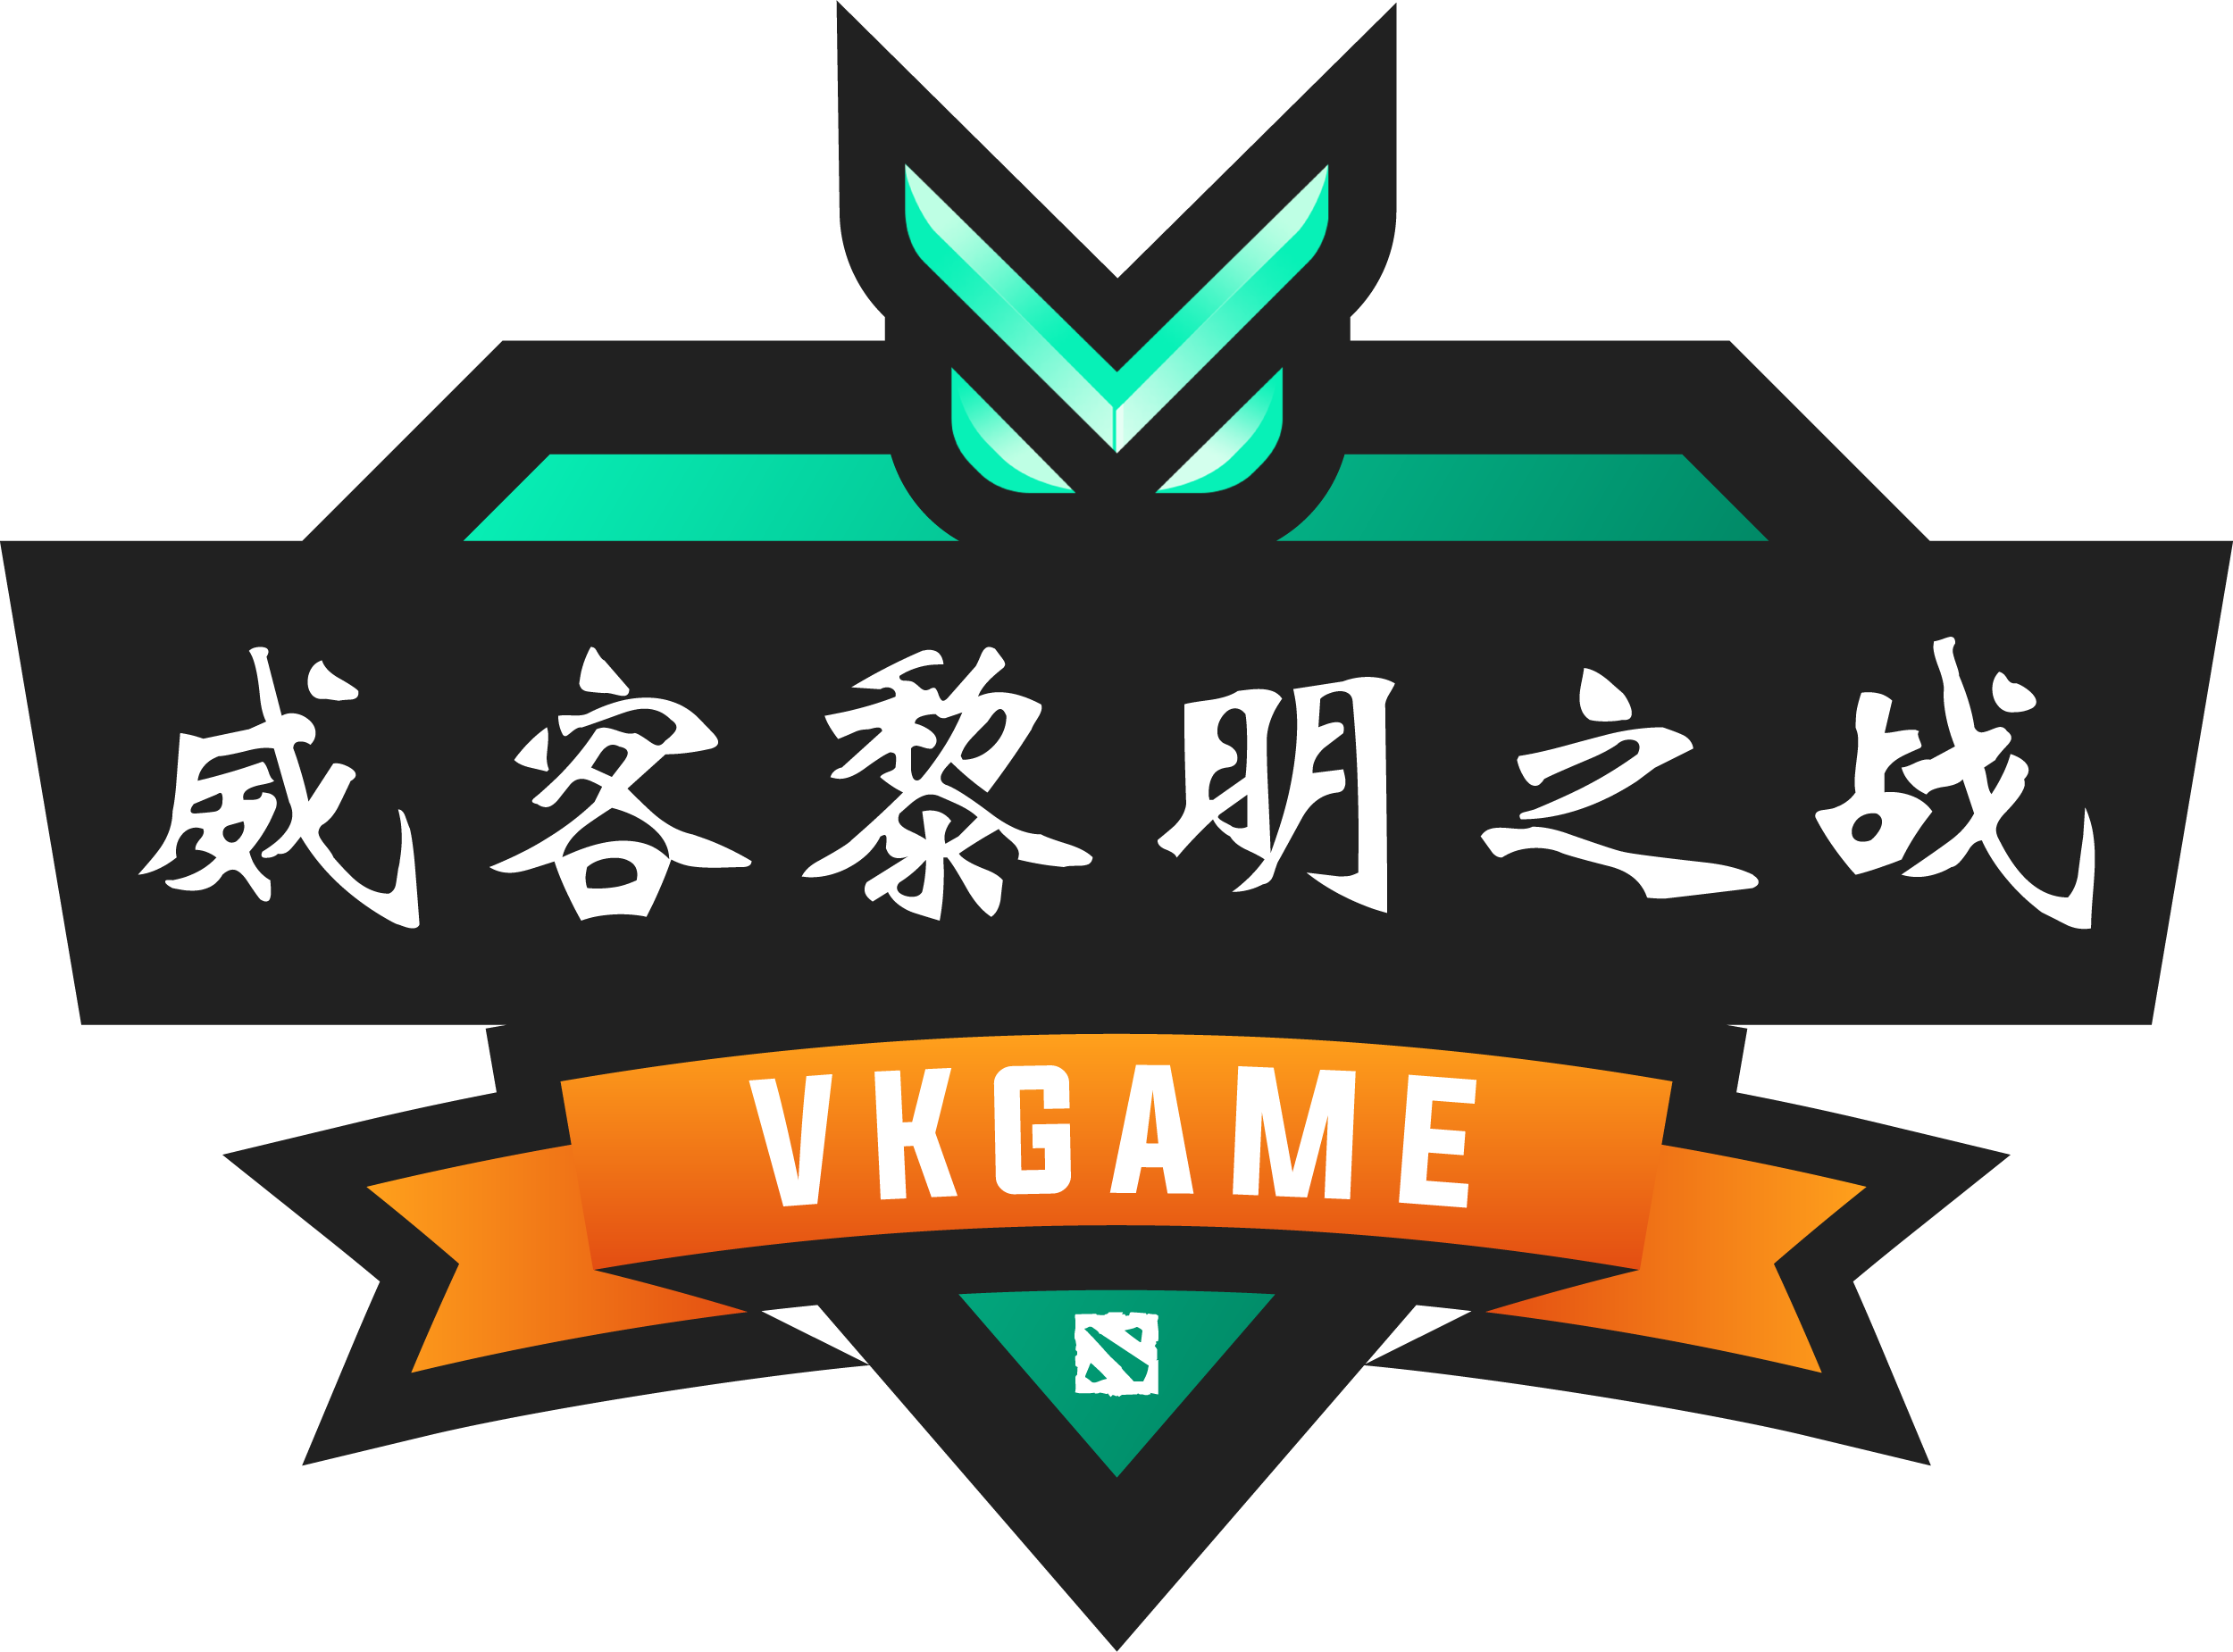 VKGAME BATTLE OF DAWN Season 2019  Tournament